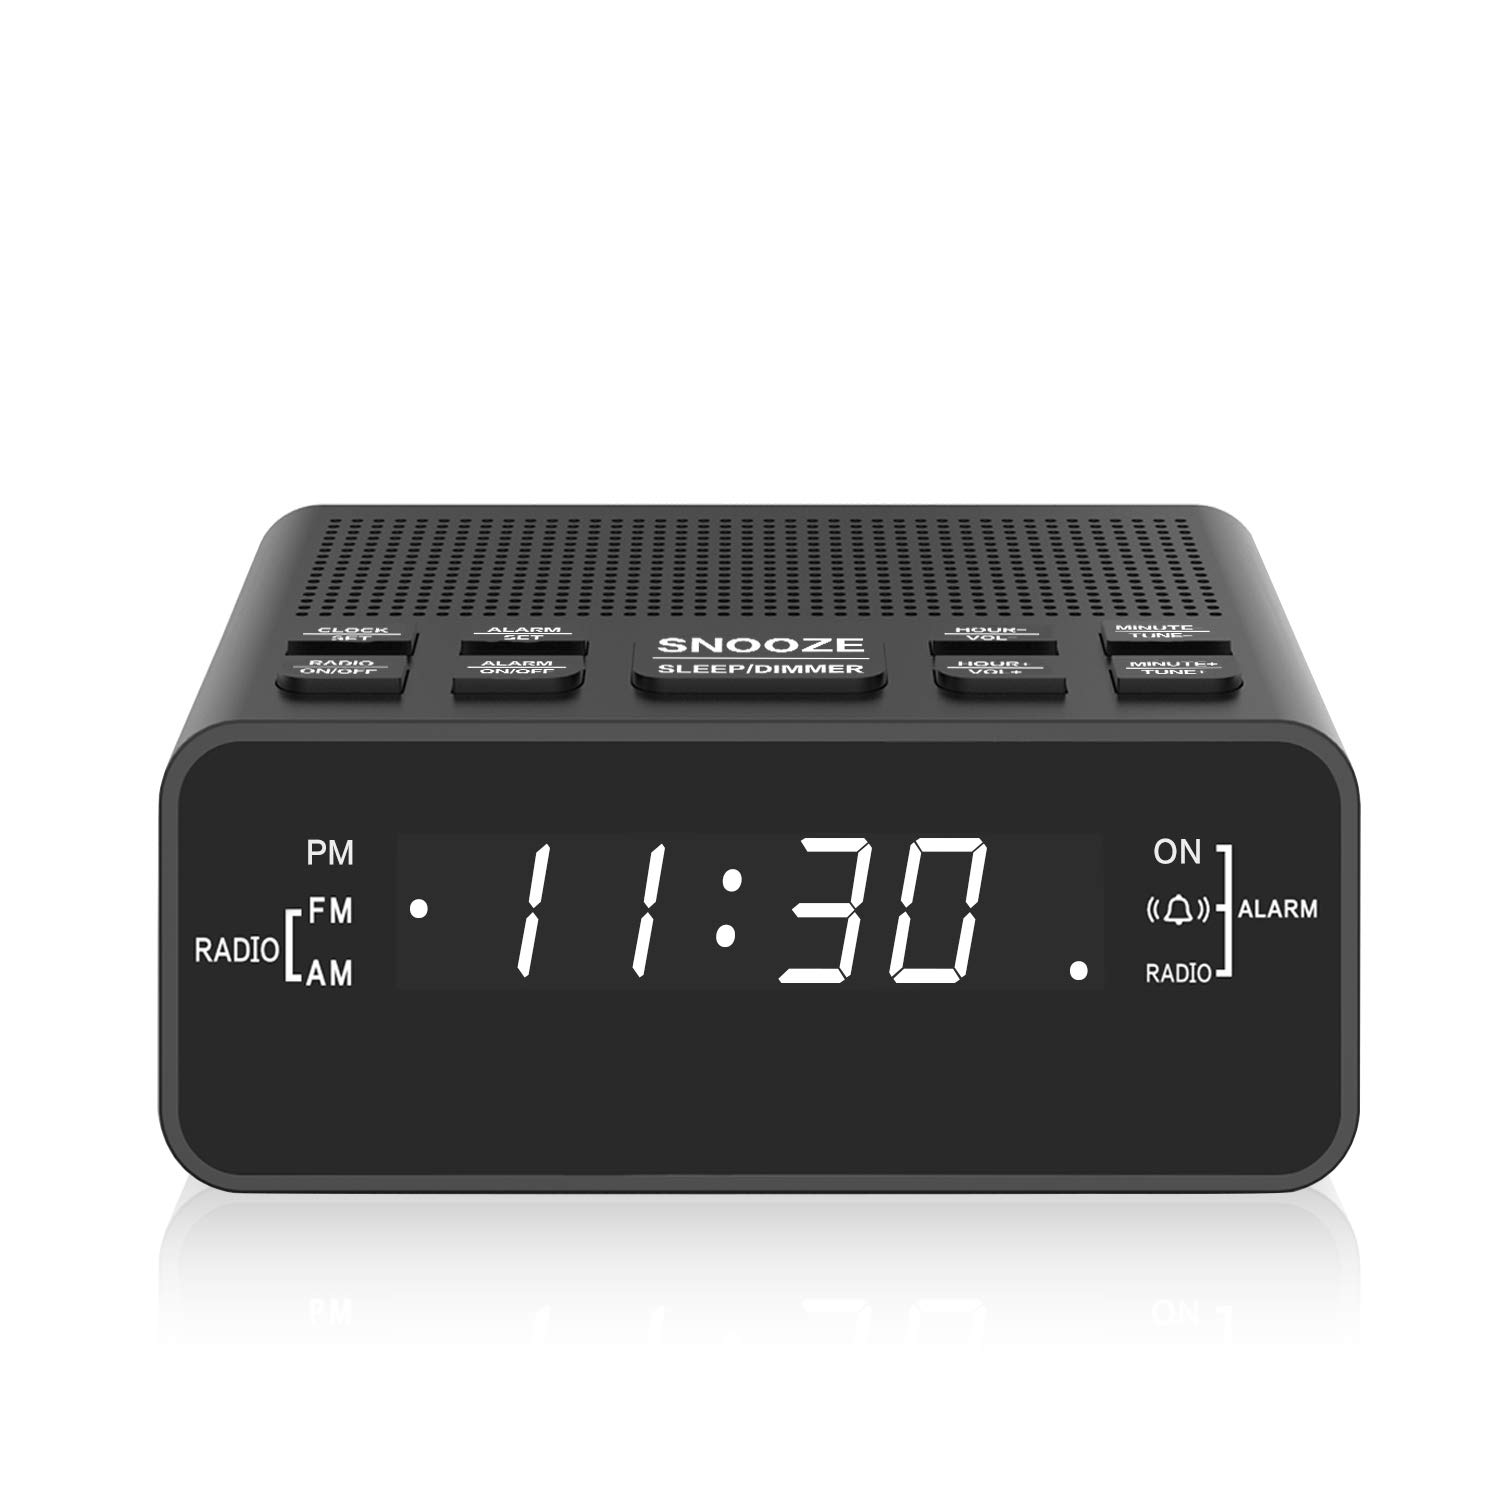 Amazon.com: Radio despertador digital AM FM para dormitorio ...